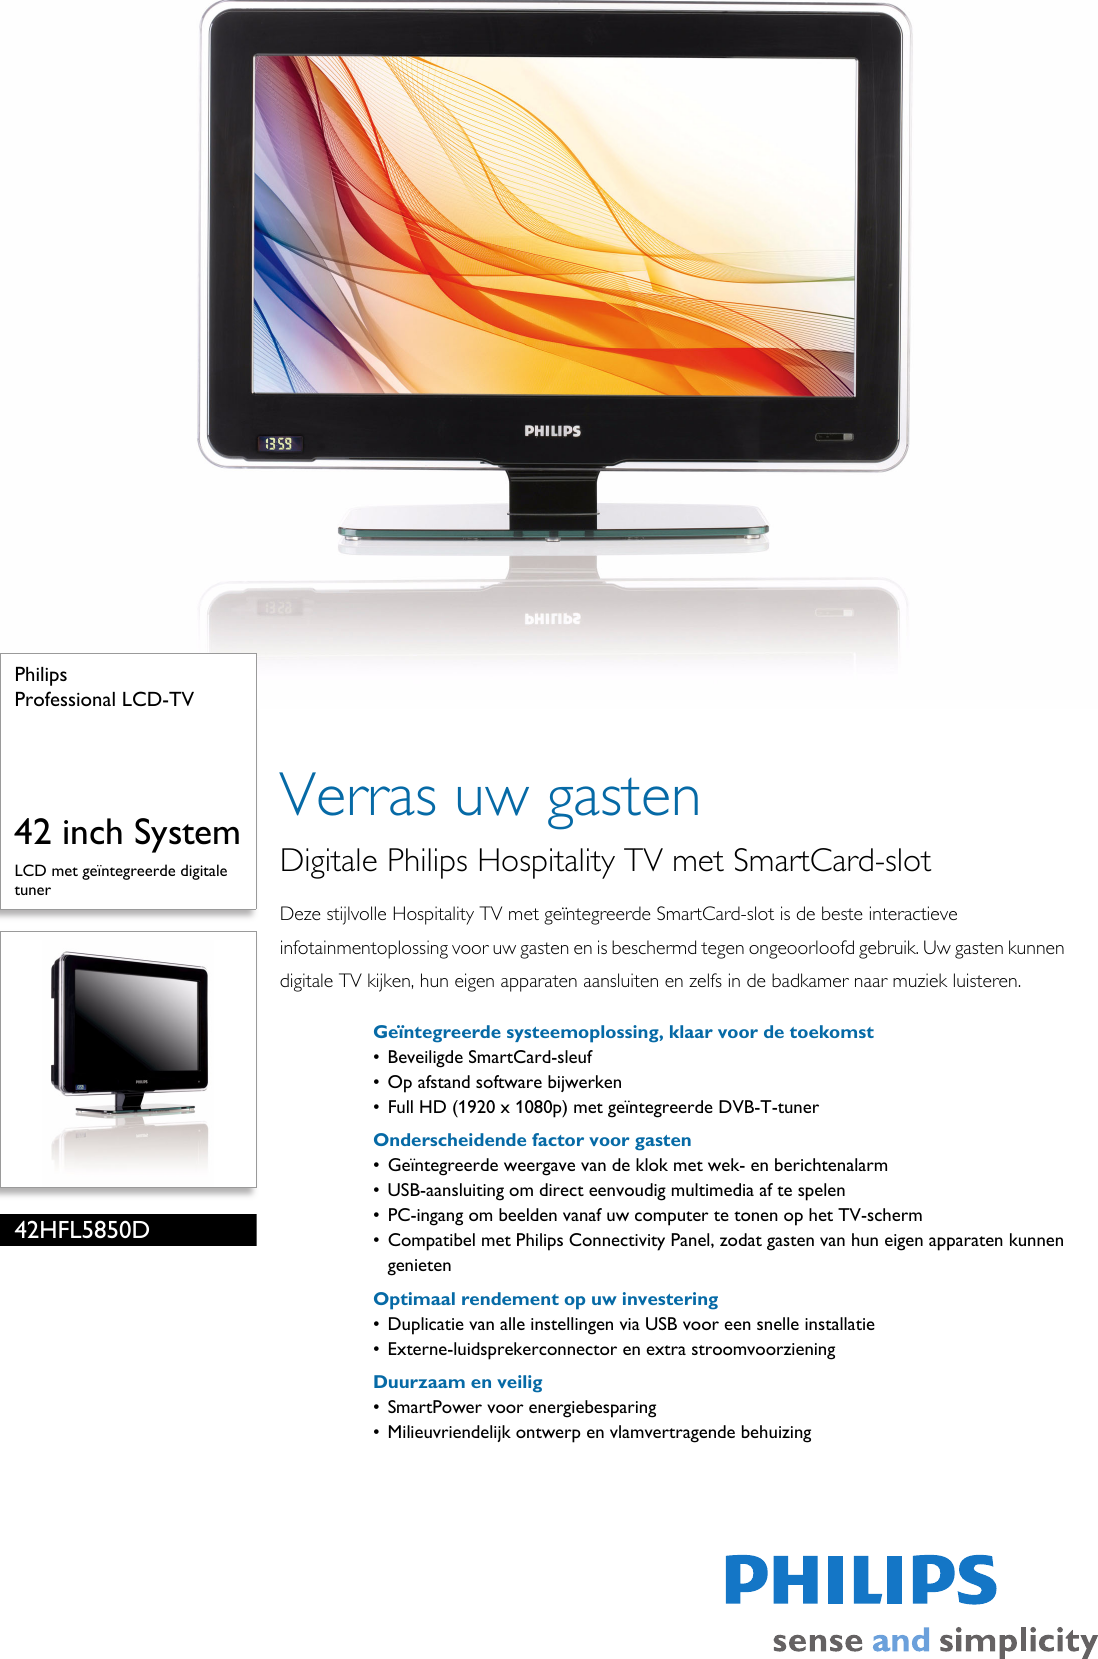 philips 42 inch lcd tv manual